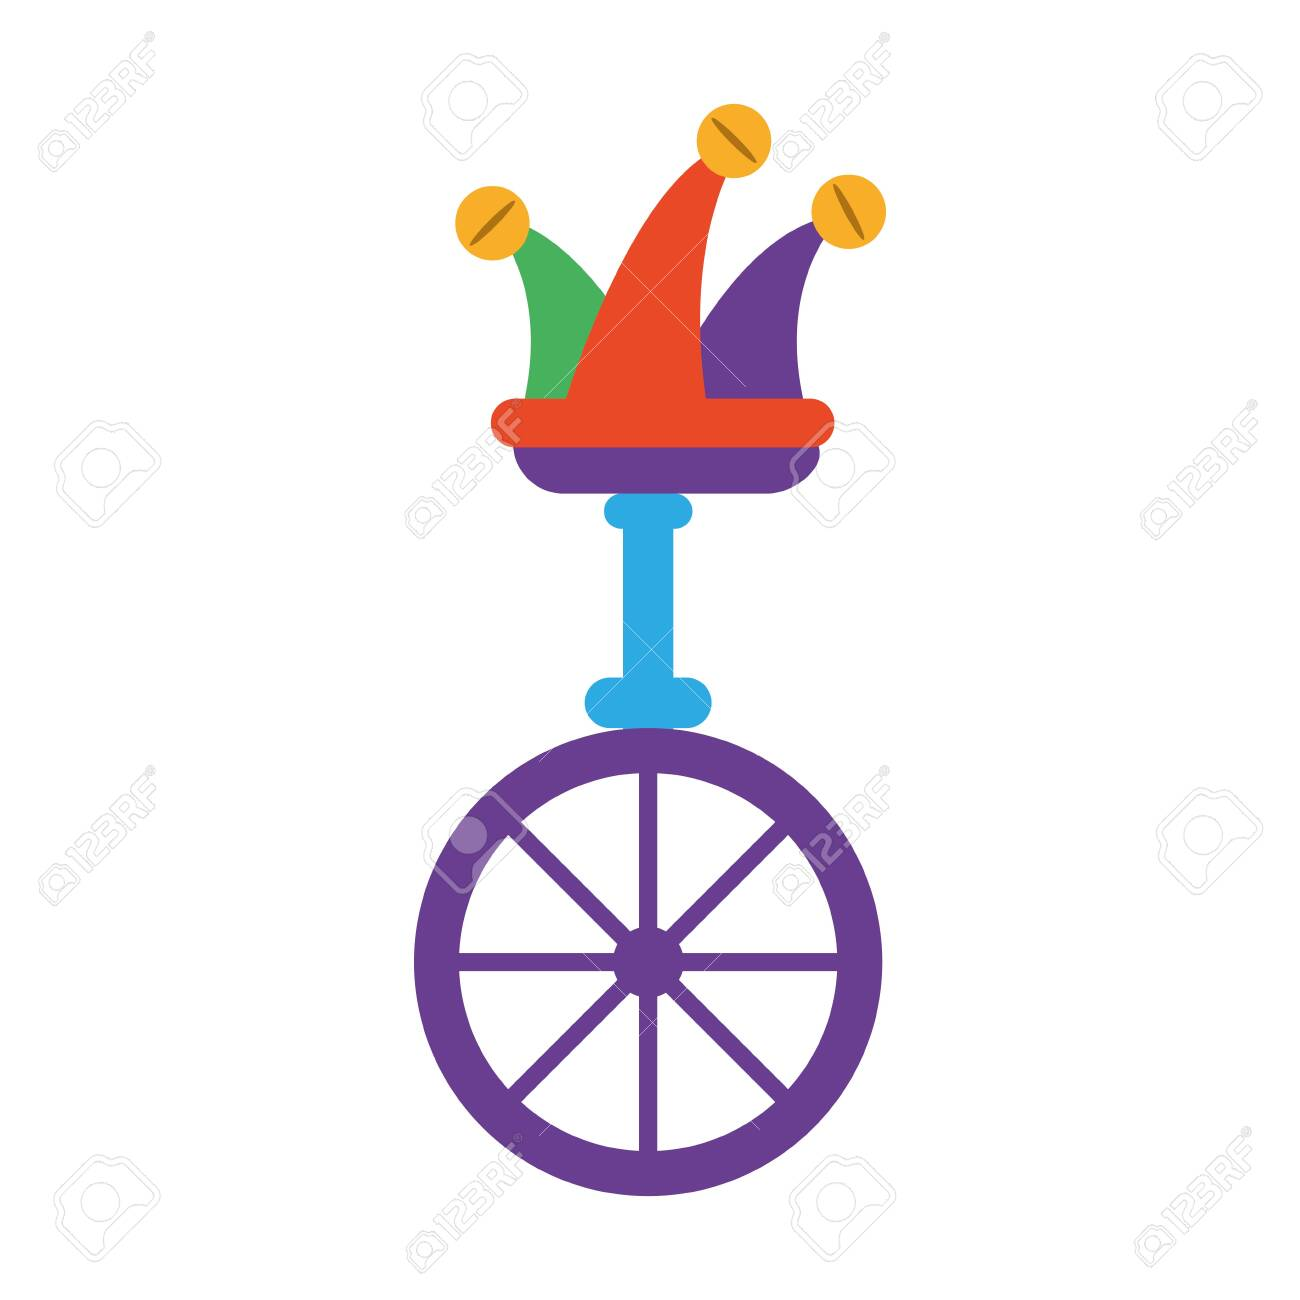 unicycle, one wheel bicycle over white background vector illustration design - 143156463